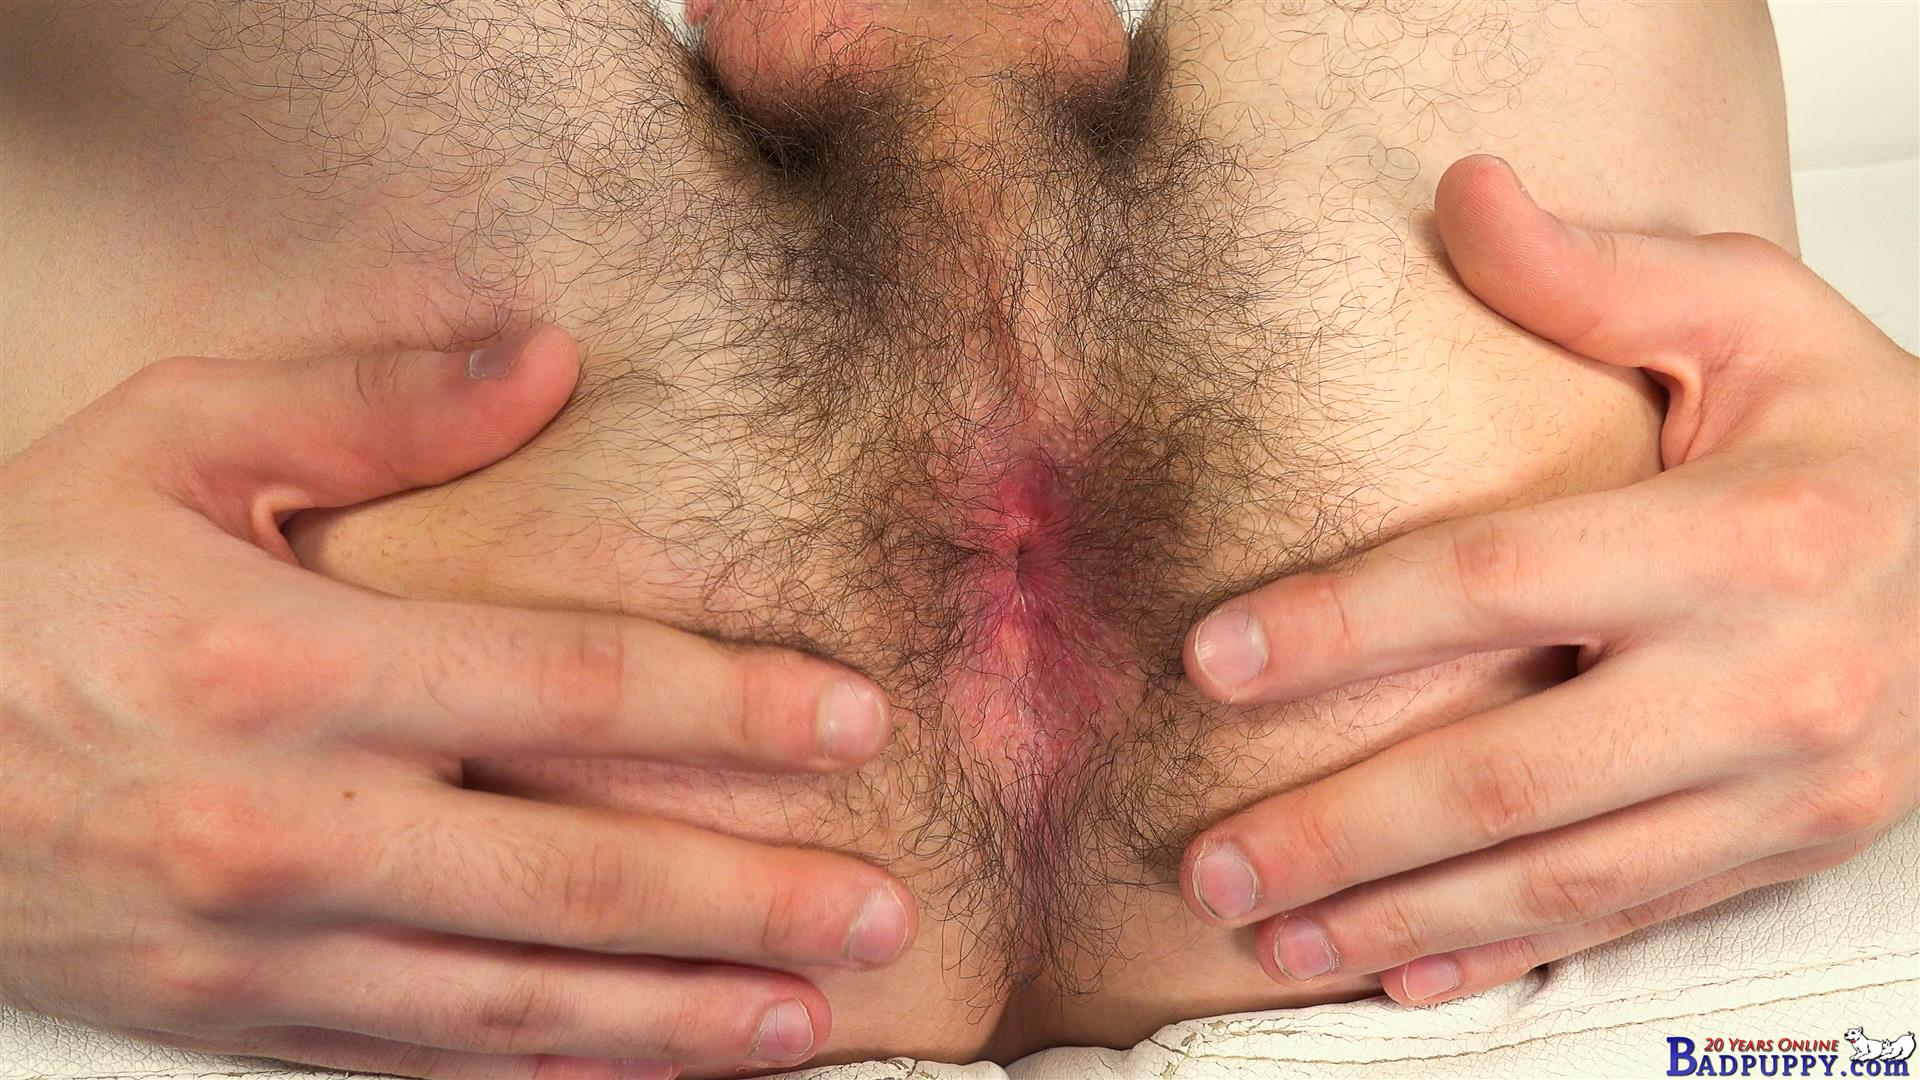 Valer-Starek-Badpuppy-Masturbation-Big-Uncut-Cock-Hairy-Ass-Amateur-Gay-Porn-19 Young Czech Guy Auditions For Gay Porn With His Big Uncut Cock And Hairy Ass